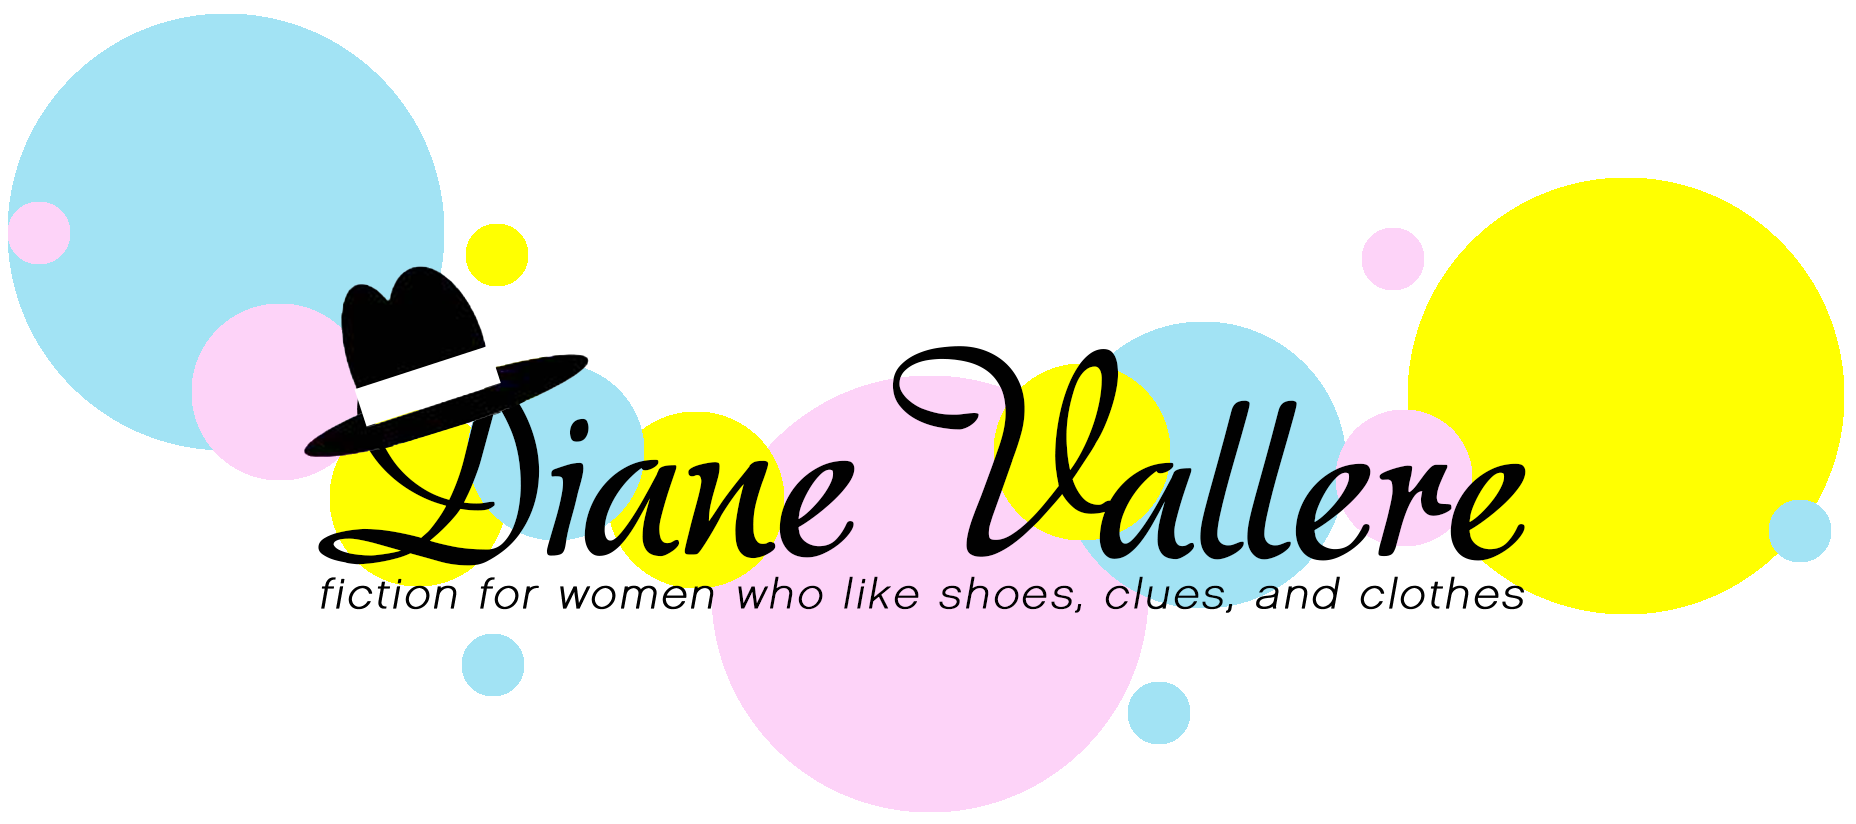 Evidence clipart lady detective. Author diane vallere samantha